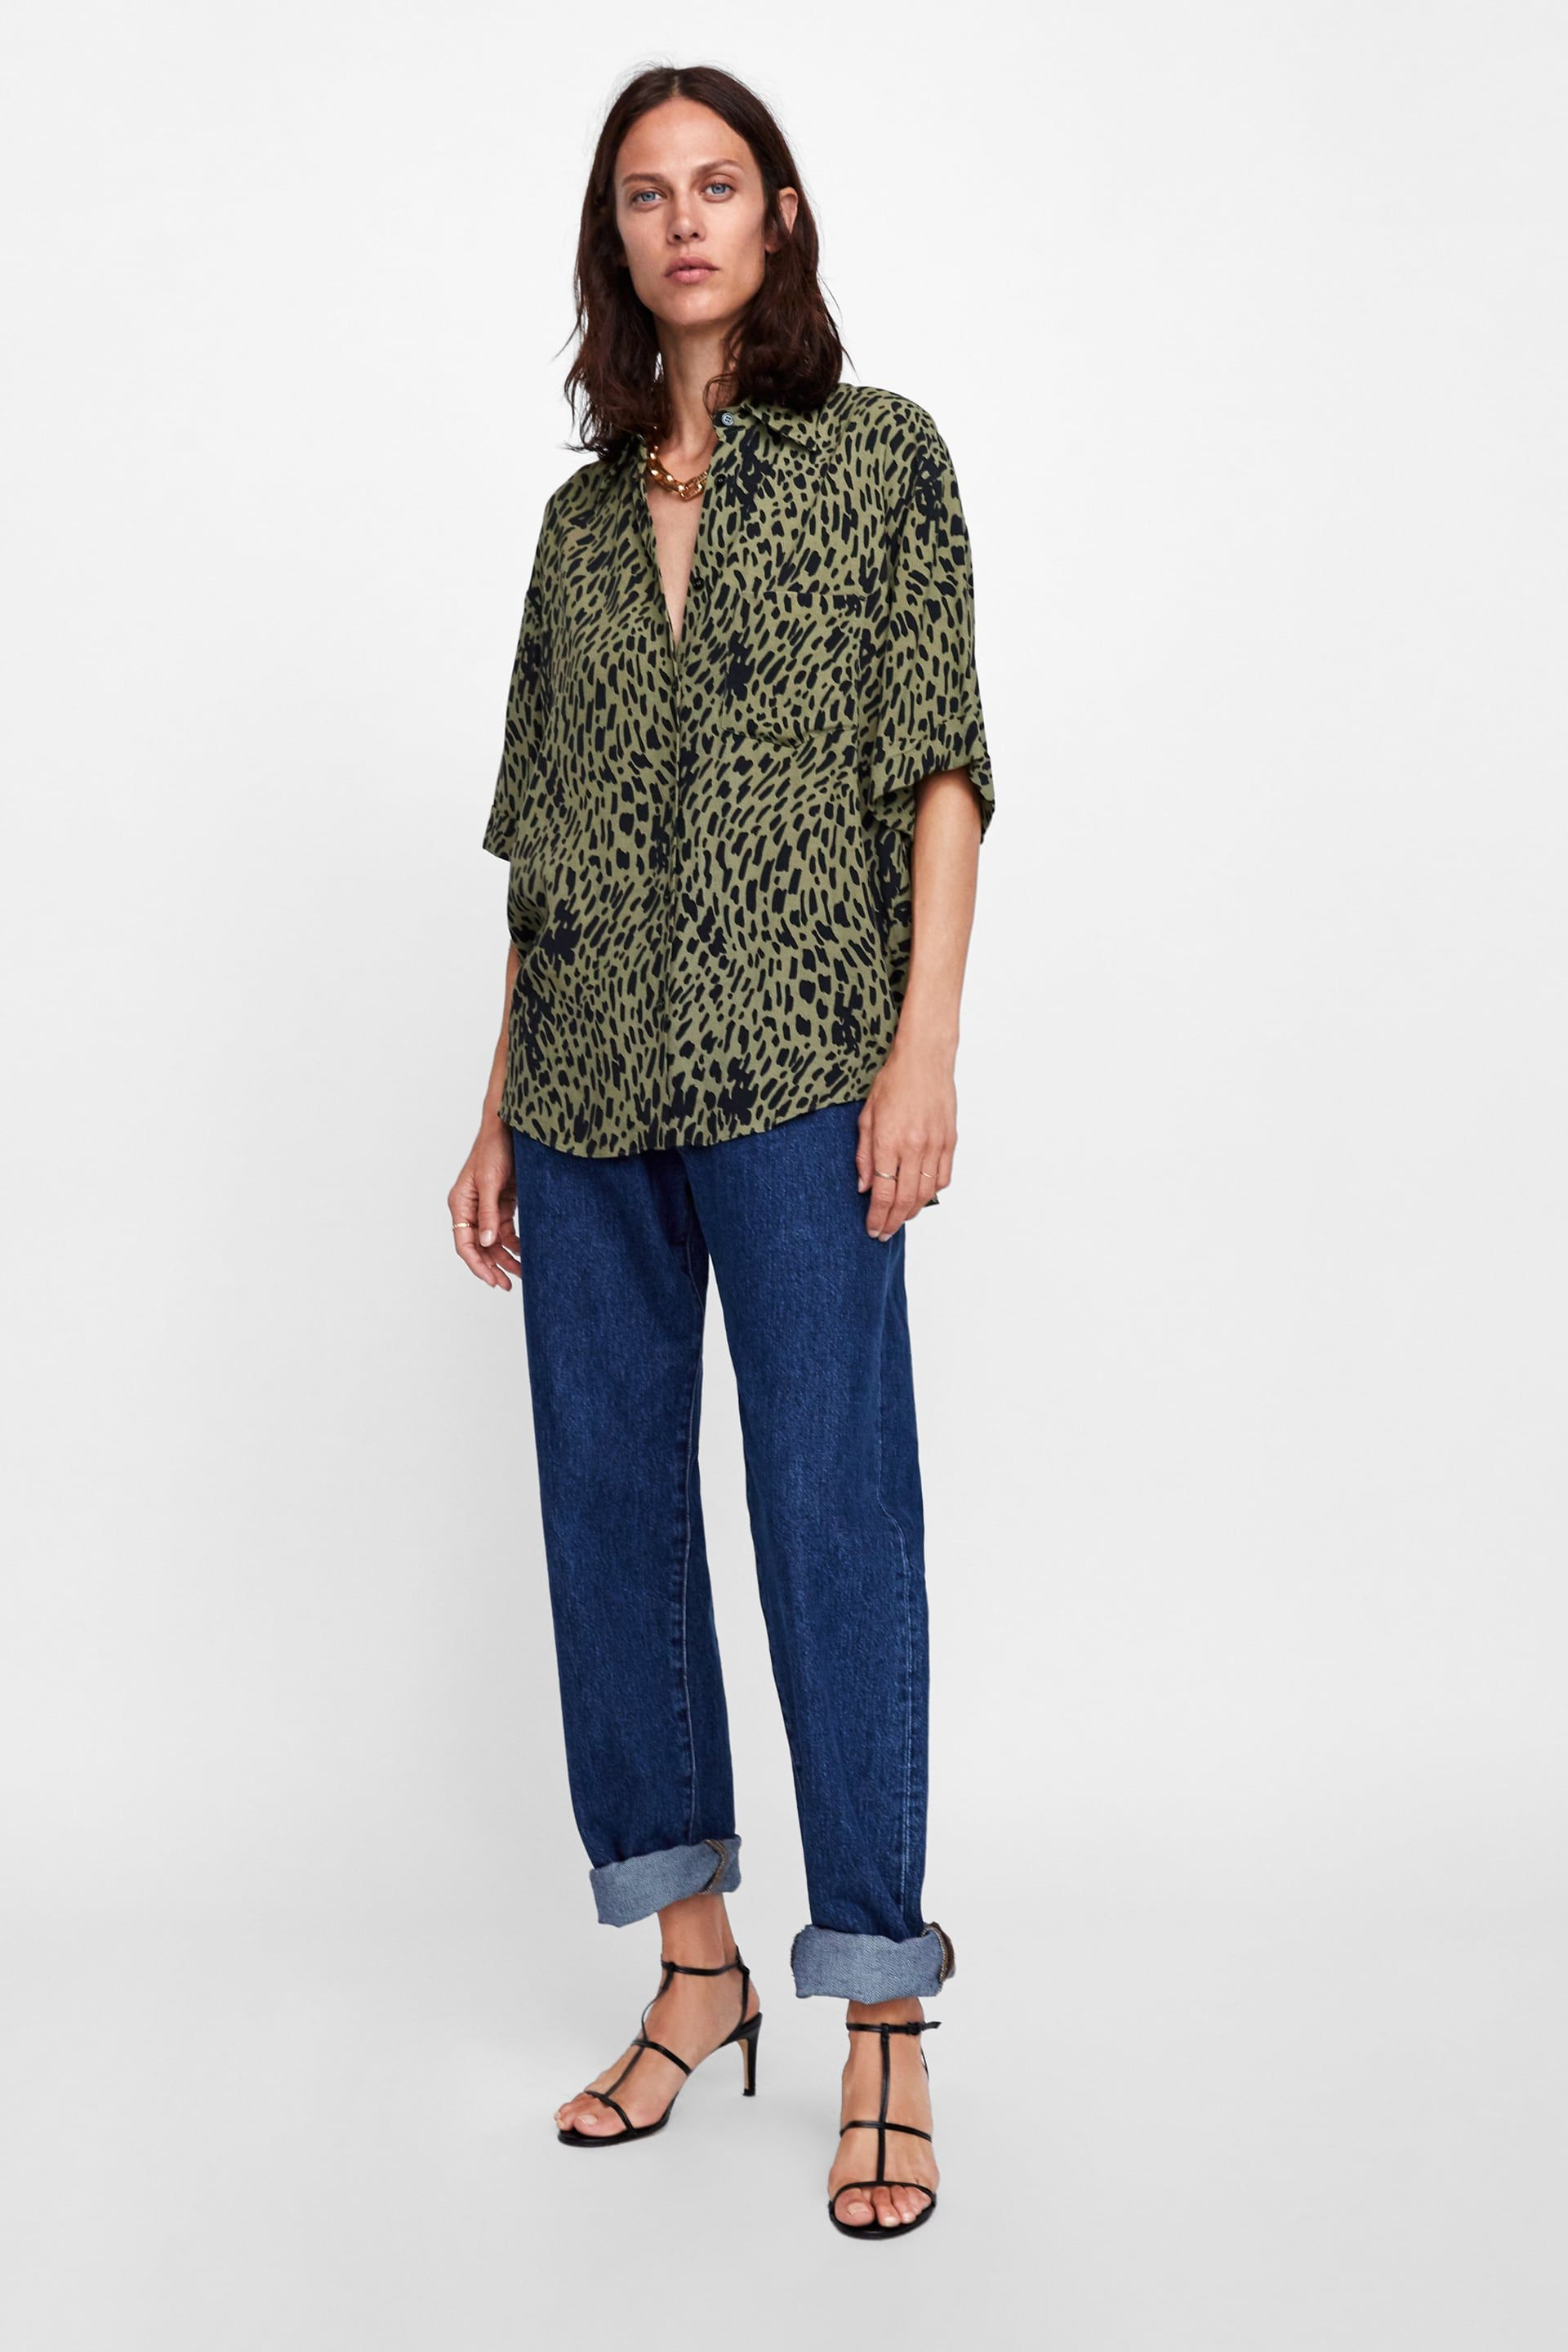 2ce4d184 Image 1 of ANIMAL PRINT BLOUSE from Zara | Shopping: Clothes & Shoes ...